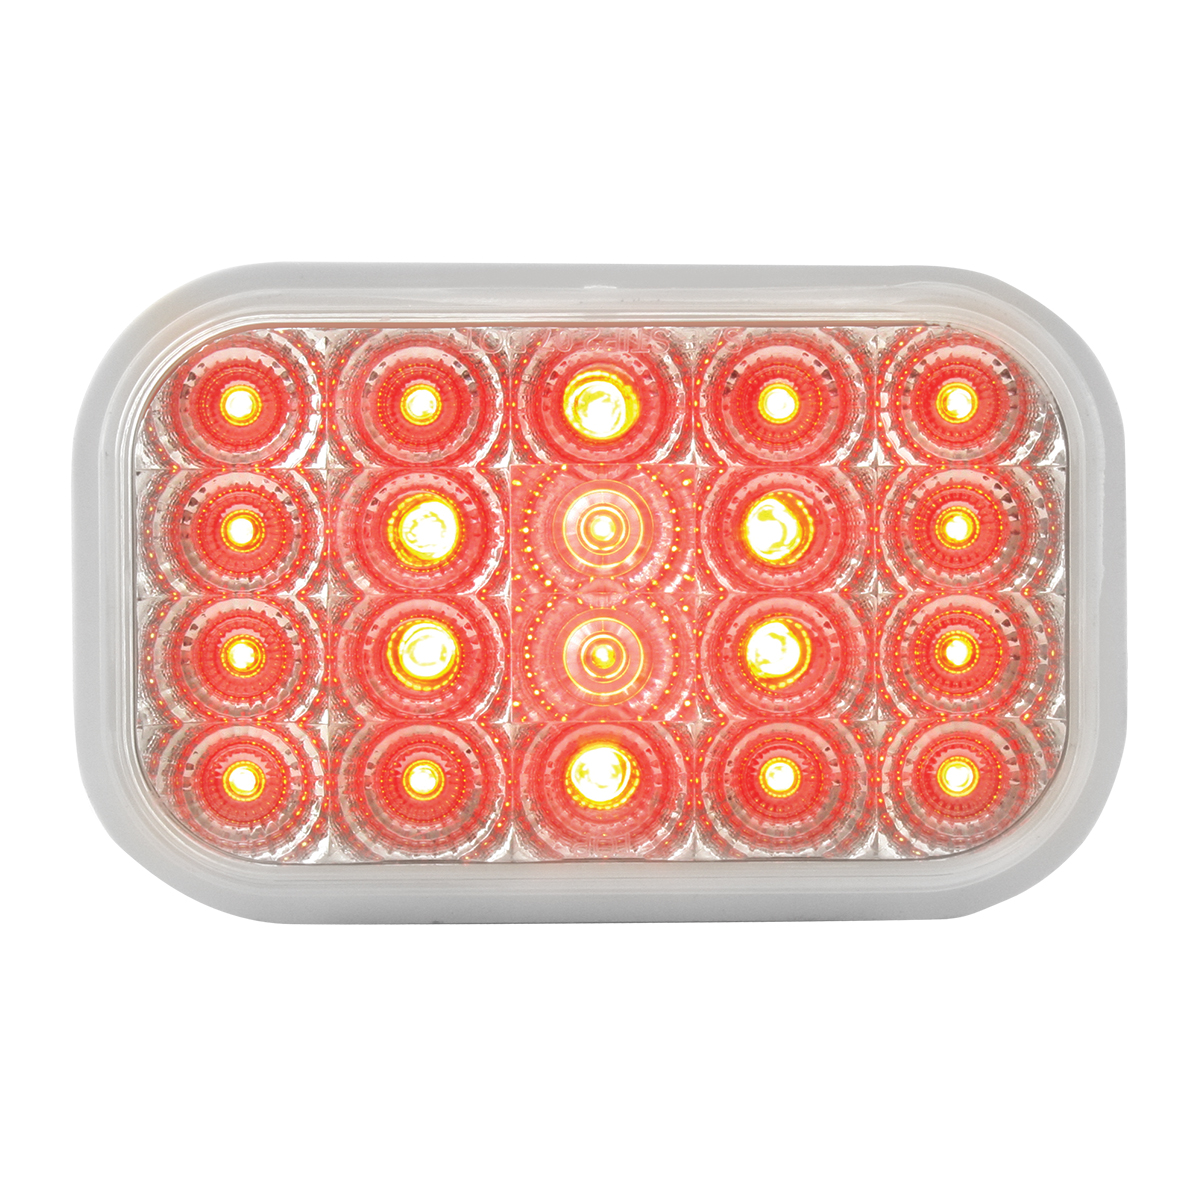 77014 Rectangular Spyder LED Light in Red/Clear